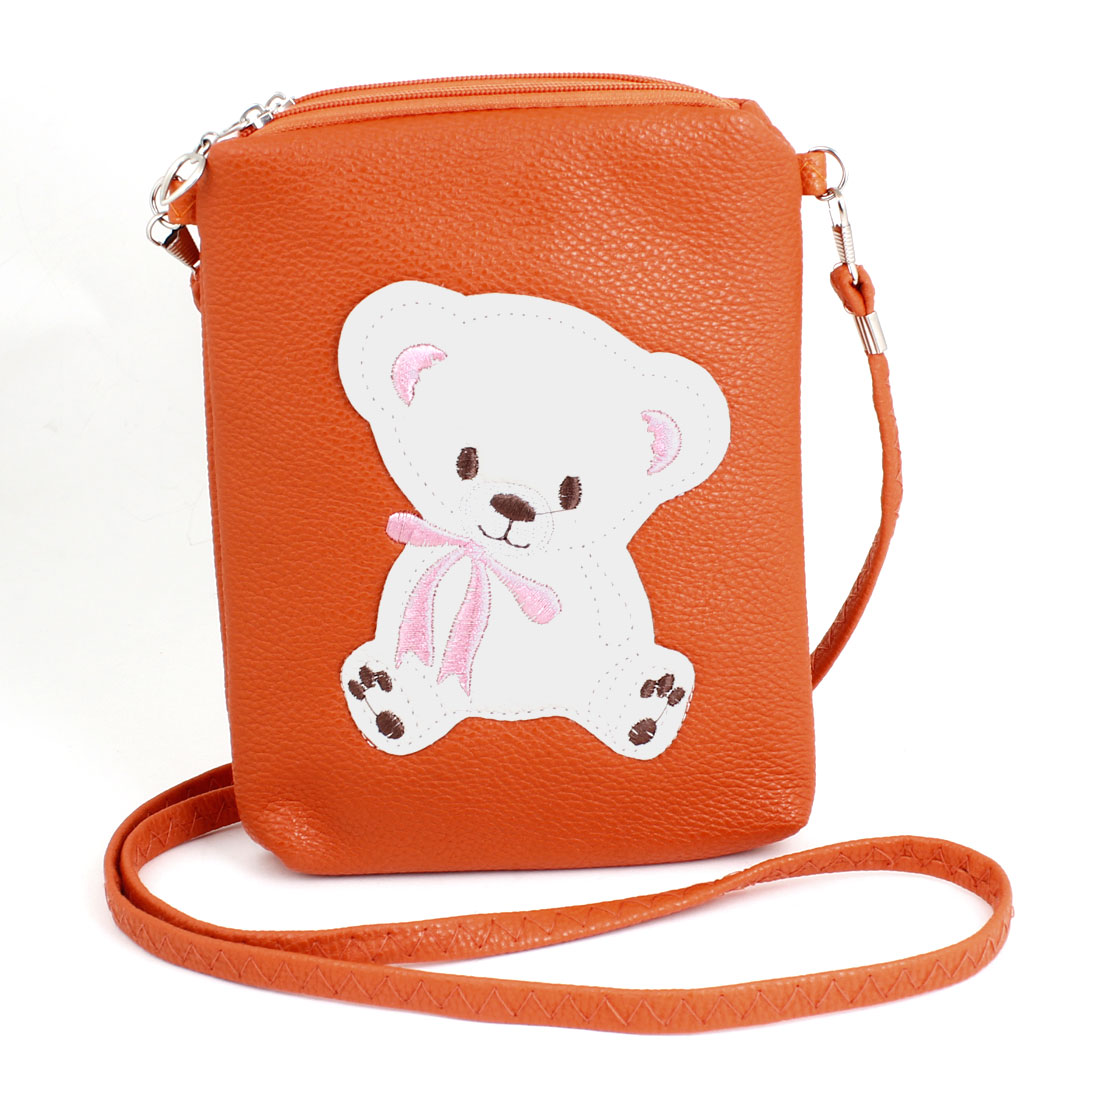 Woman Lady Bear Decor Faux Leather Zippered Shoulder Bag Orange w Strap